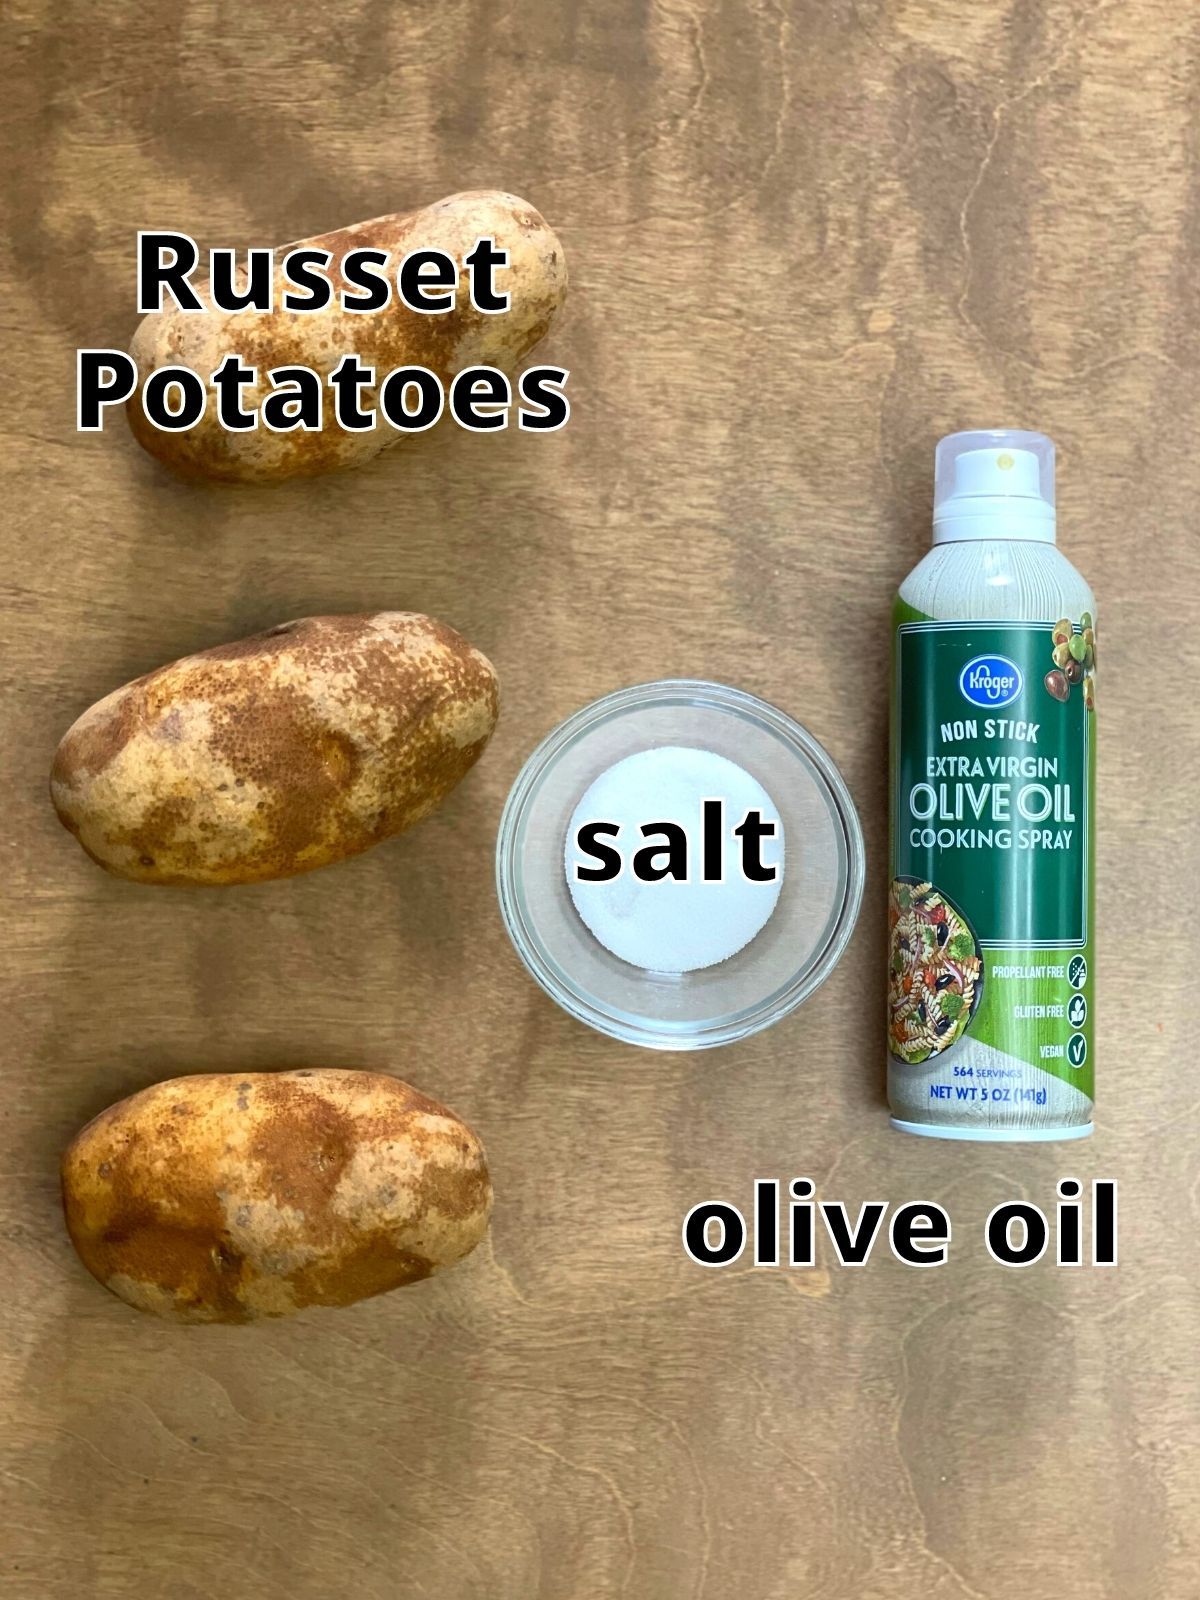 Three Russet Potatoes, a bowl of salt, and a can of olive oil cooking spray.